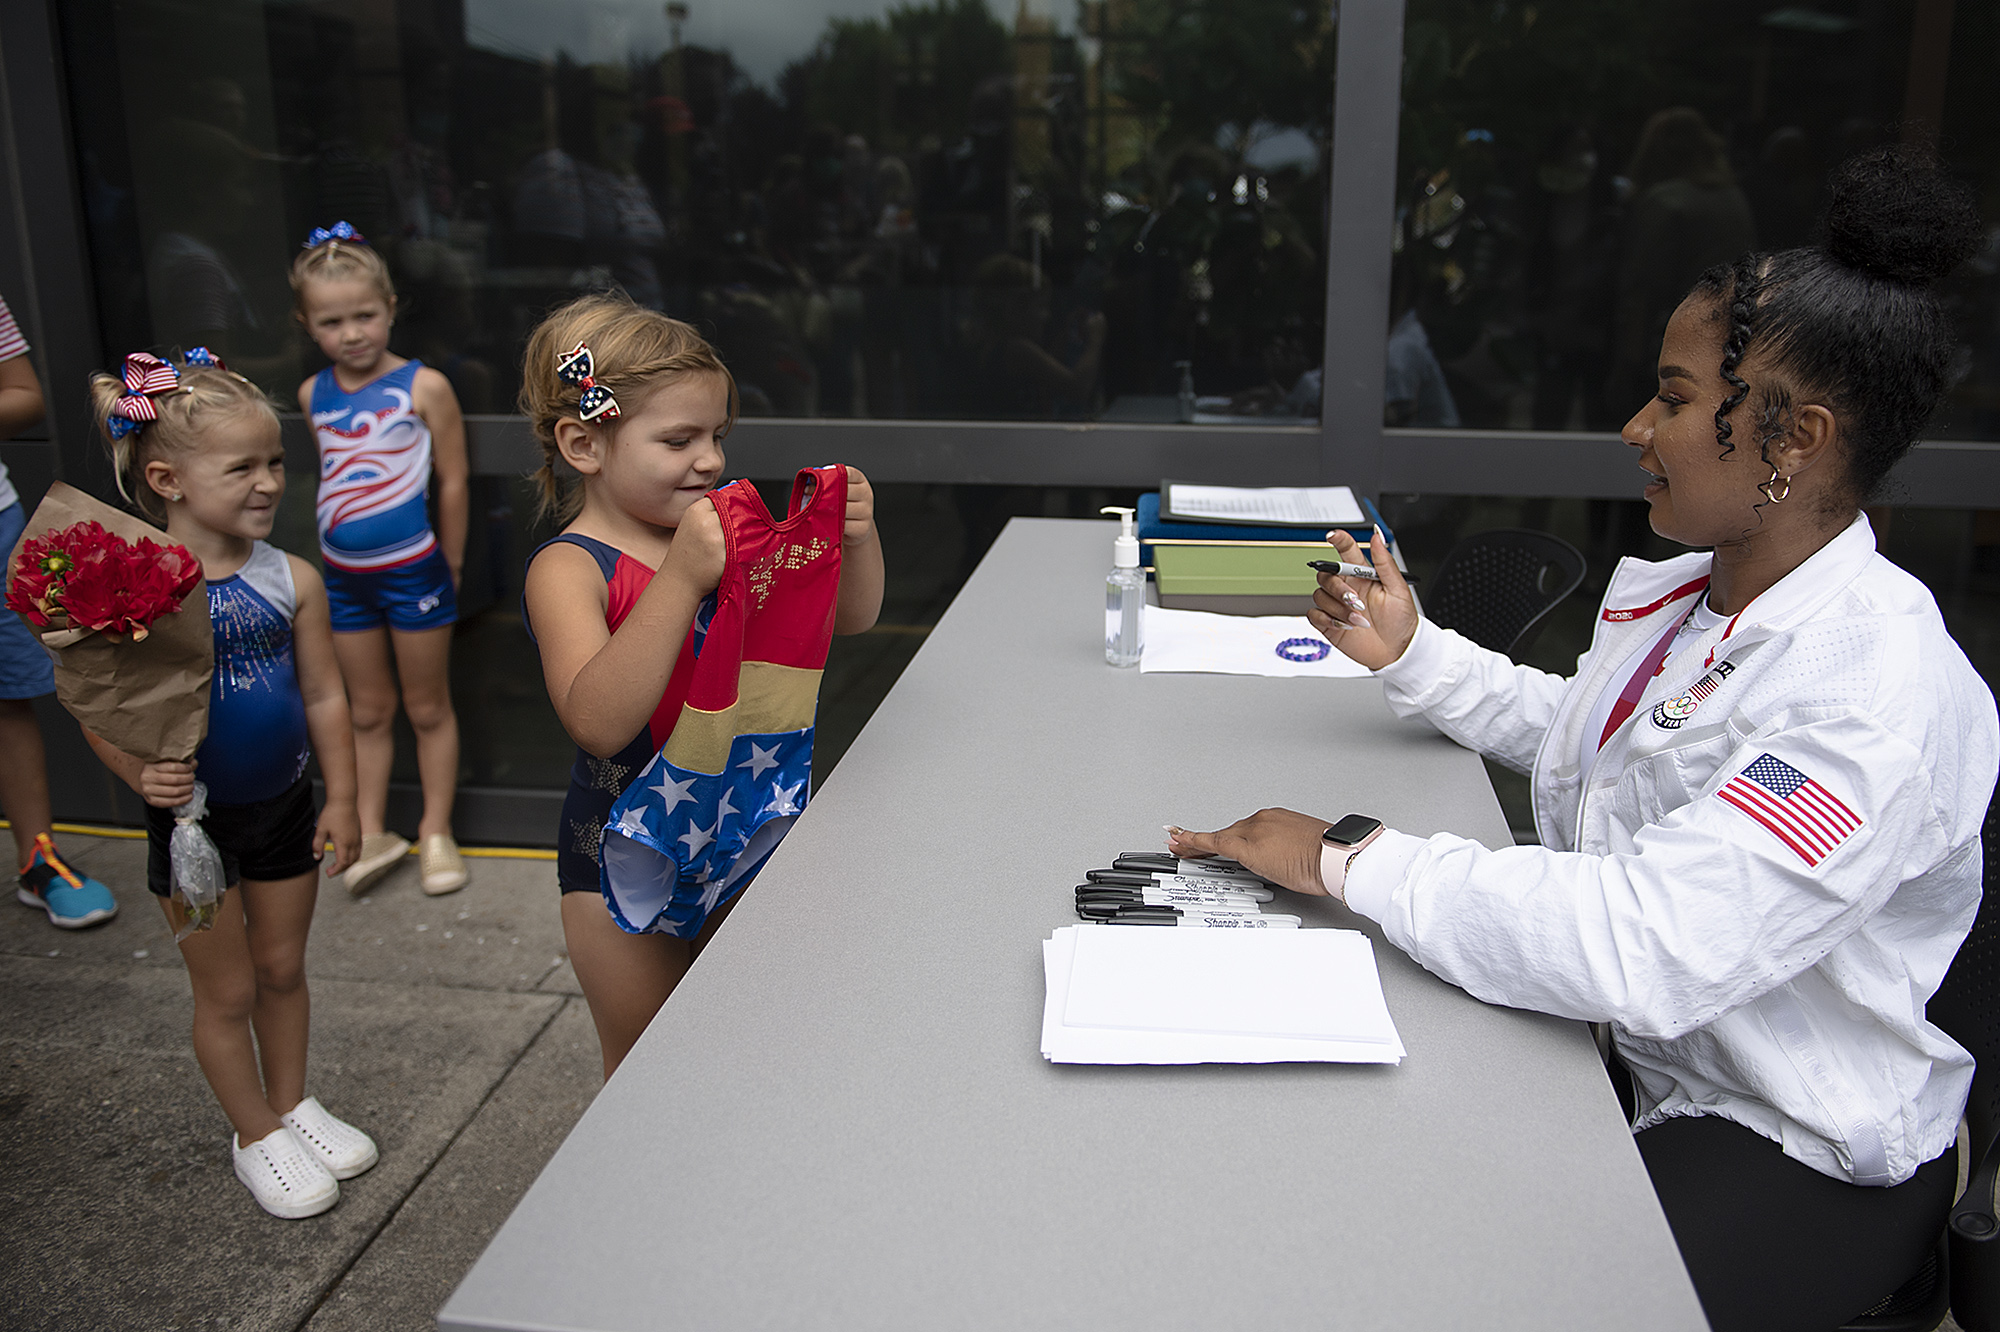 Young gymnasts Hadley Cherry, 3, from left, Quinn Cherry, 5, and Eliora Bertsch, 5, wait in line outside Vancouver City Hall for an autograph from 2020 Olympic Games silver medal winning gymnast Jordan Chiles following the parade in her honor on Sunday afternoon, Aug. 22, 2021.